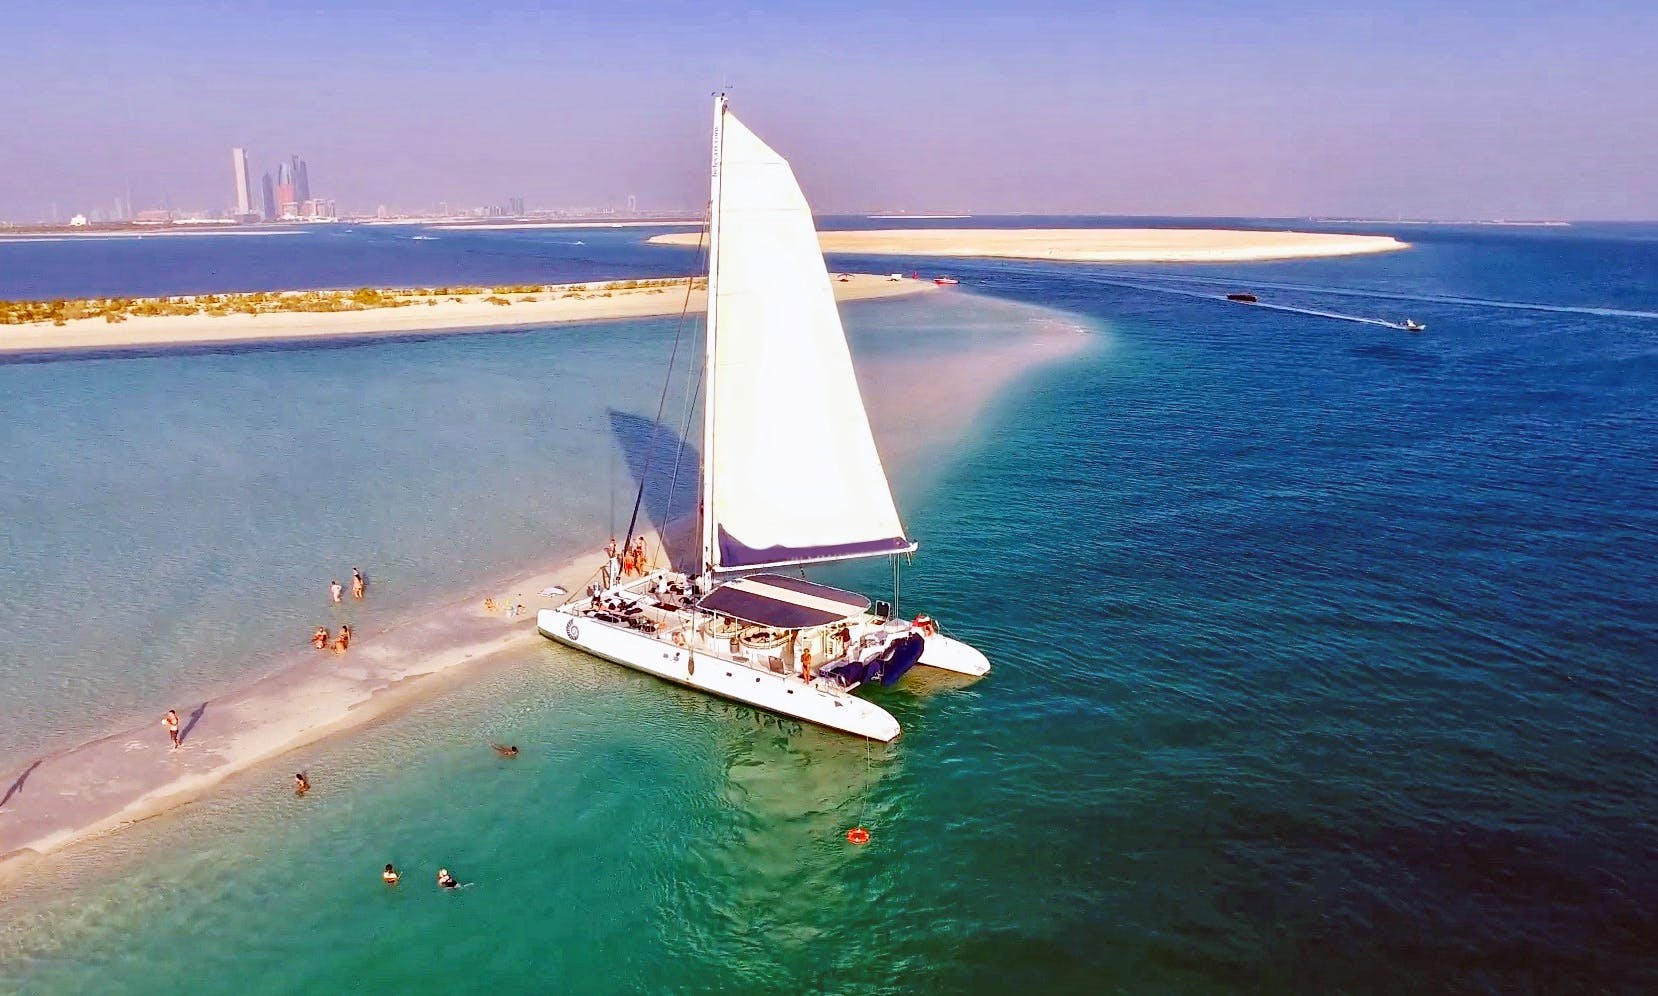 74 ft Catamaran Party for Up to 65 People in Dubai, UAE